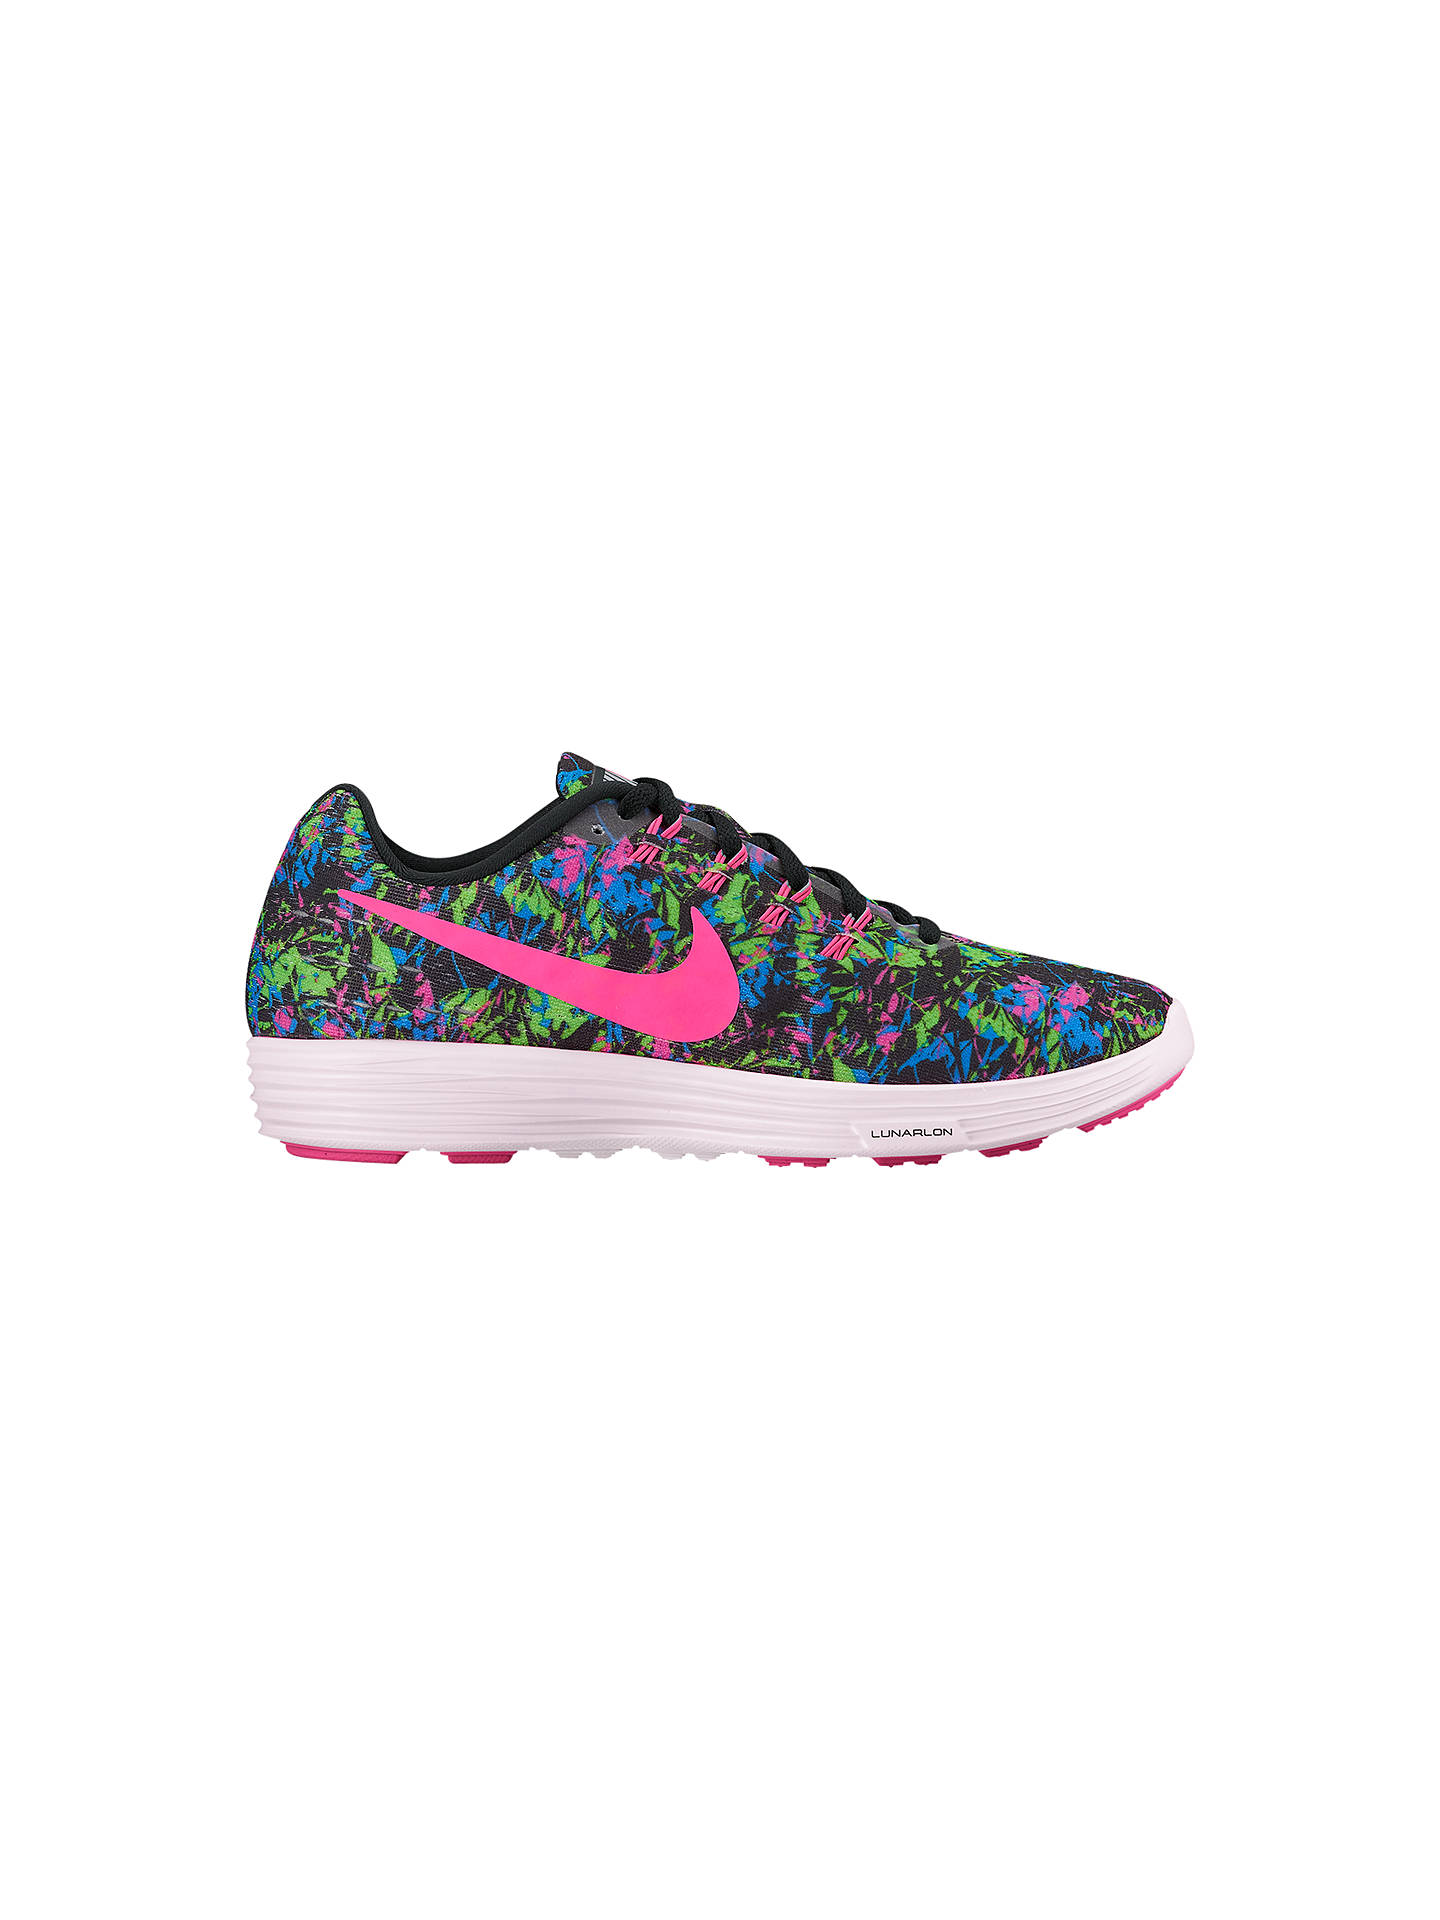 online store 267a6 56ea4 Buy Nike Women s LunarTempo 2 Print Running Shoes, Black Pink, 4 Online at  ...